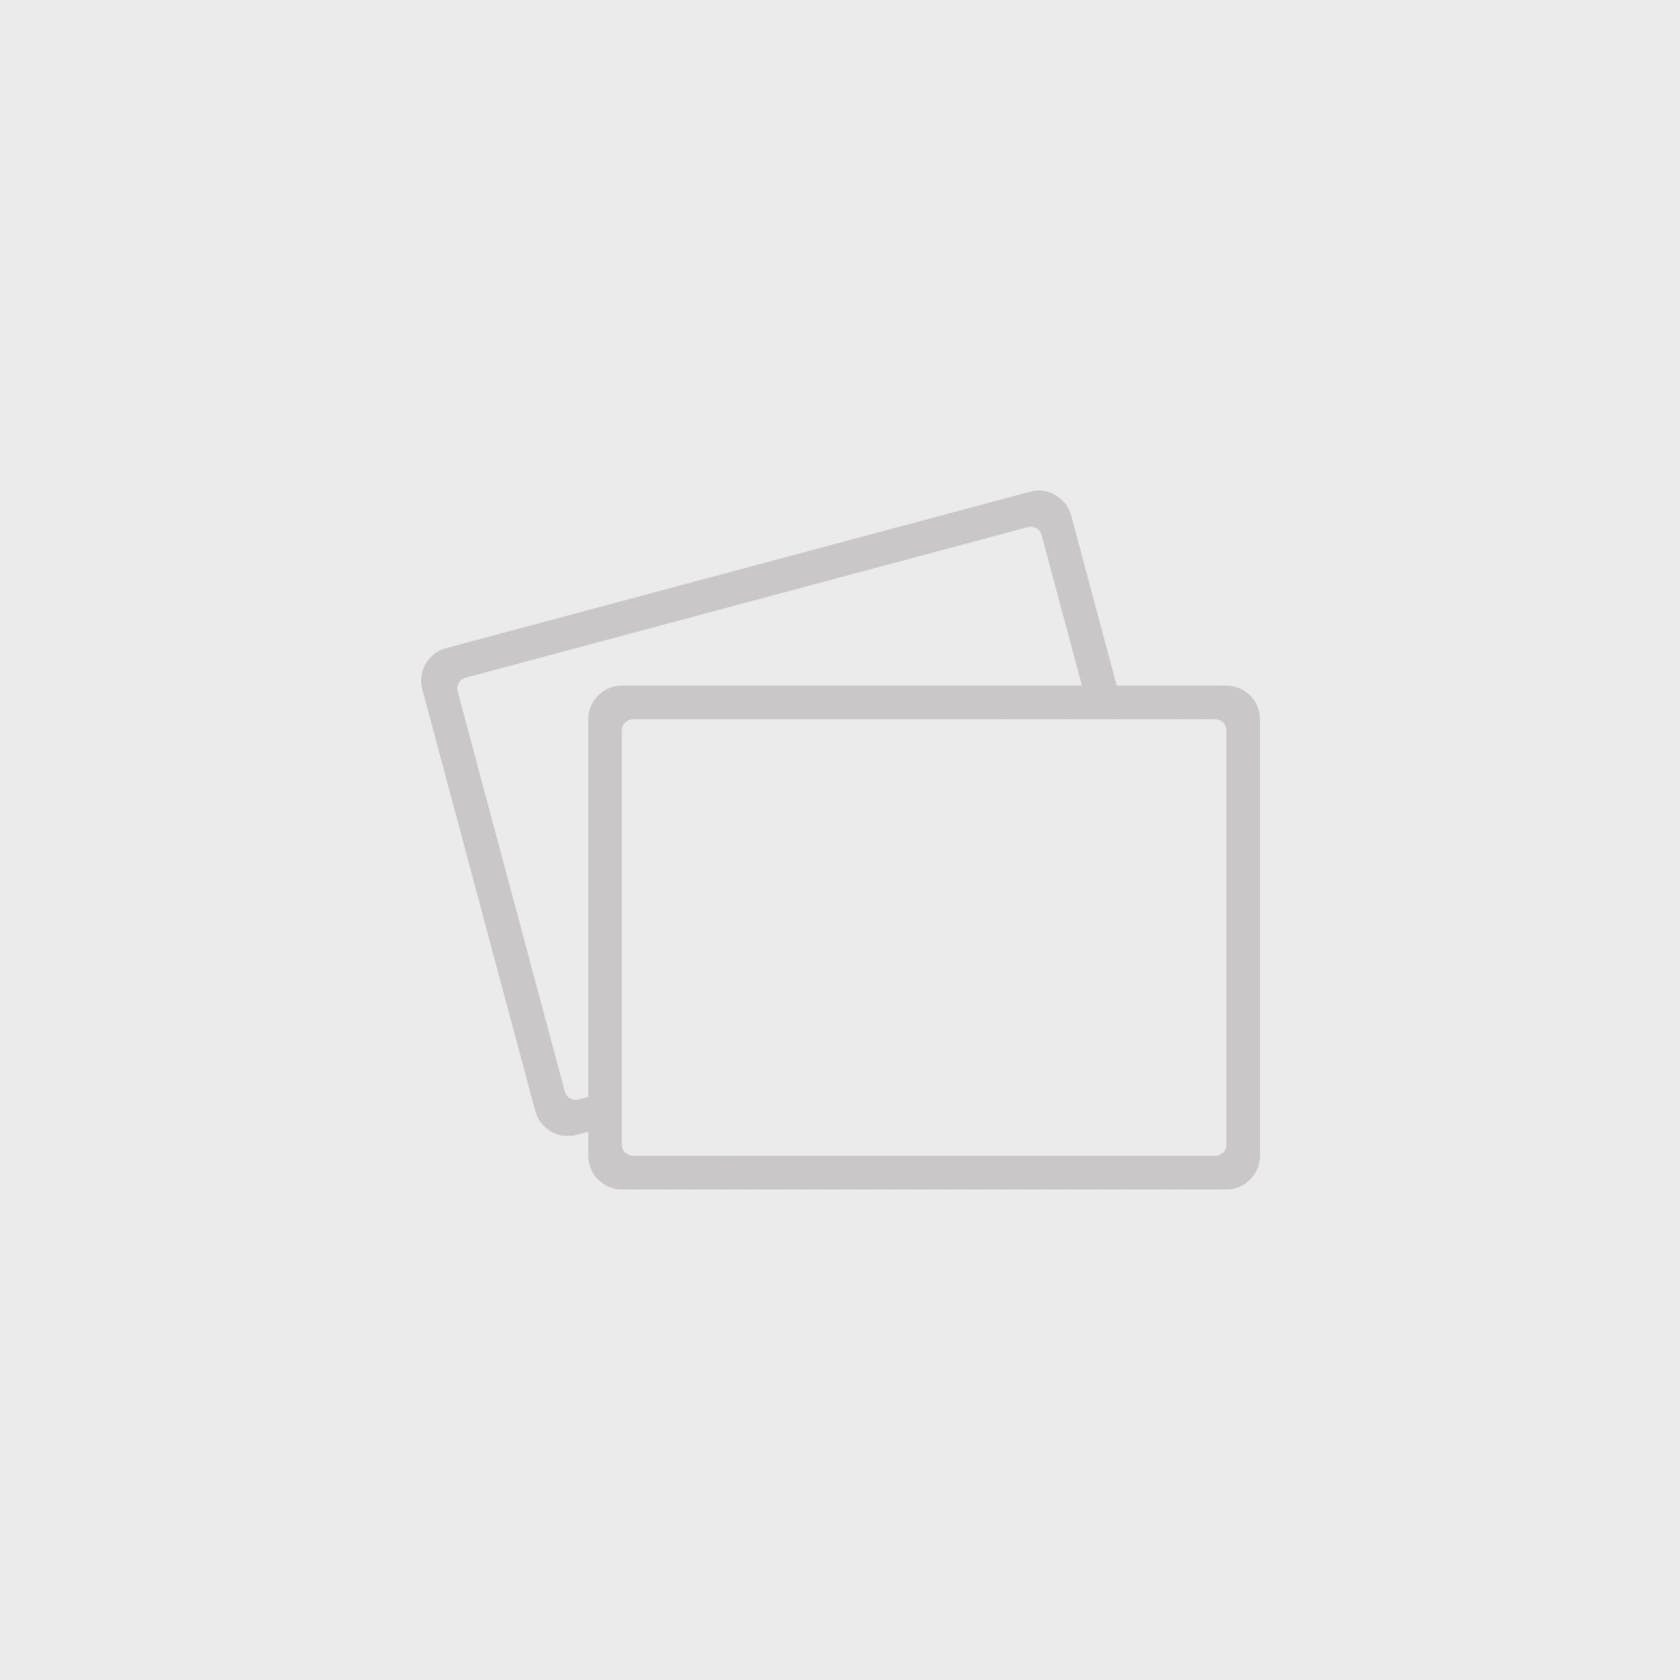 KENSINGTON LIGHT OAK (CLICK MET KURK) 5388182119 ( SARENZA LIGHT OAK )